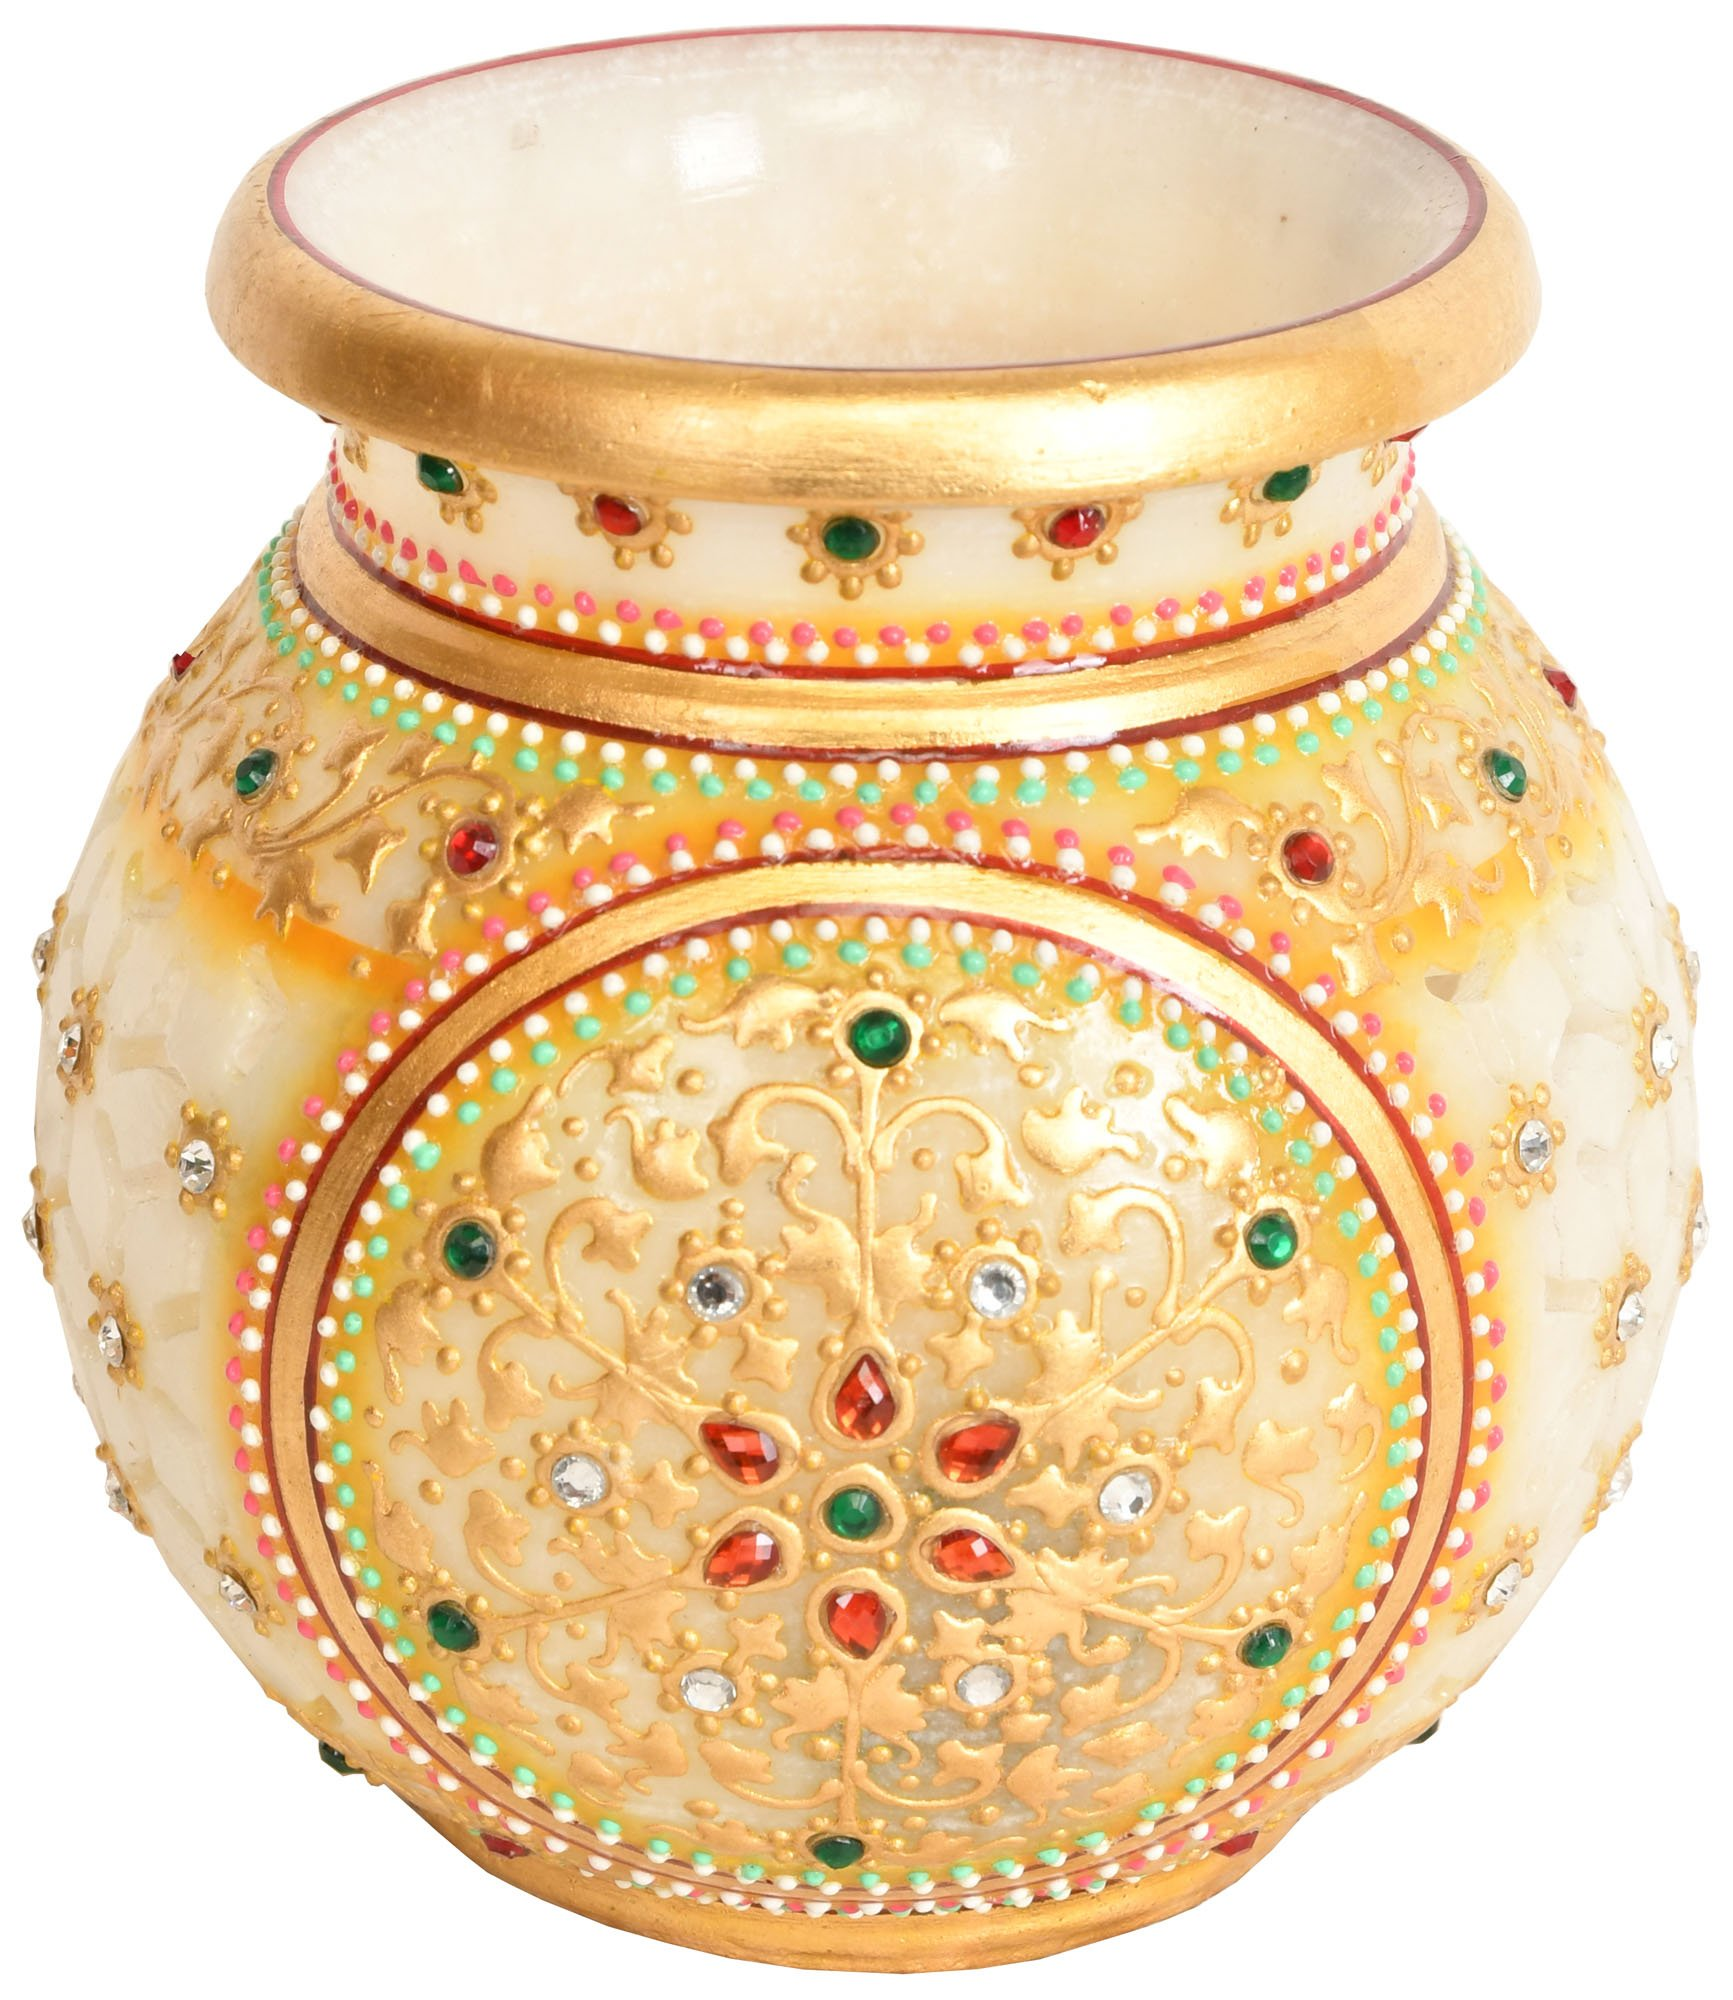 Exotic India Beautifully Decorated Pot with Cut Lattice – White Marble Sculpture